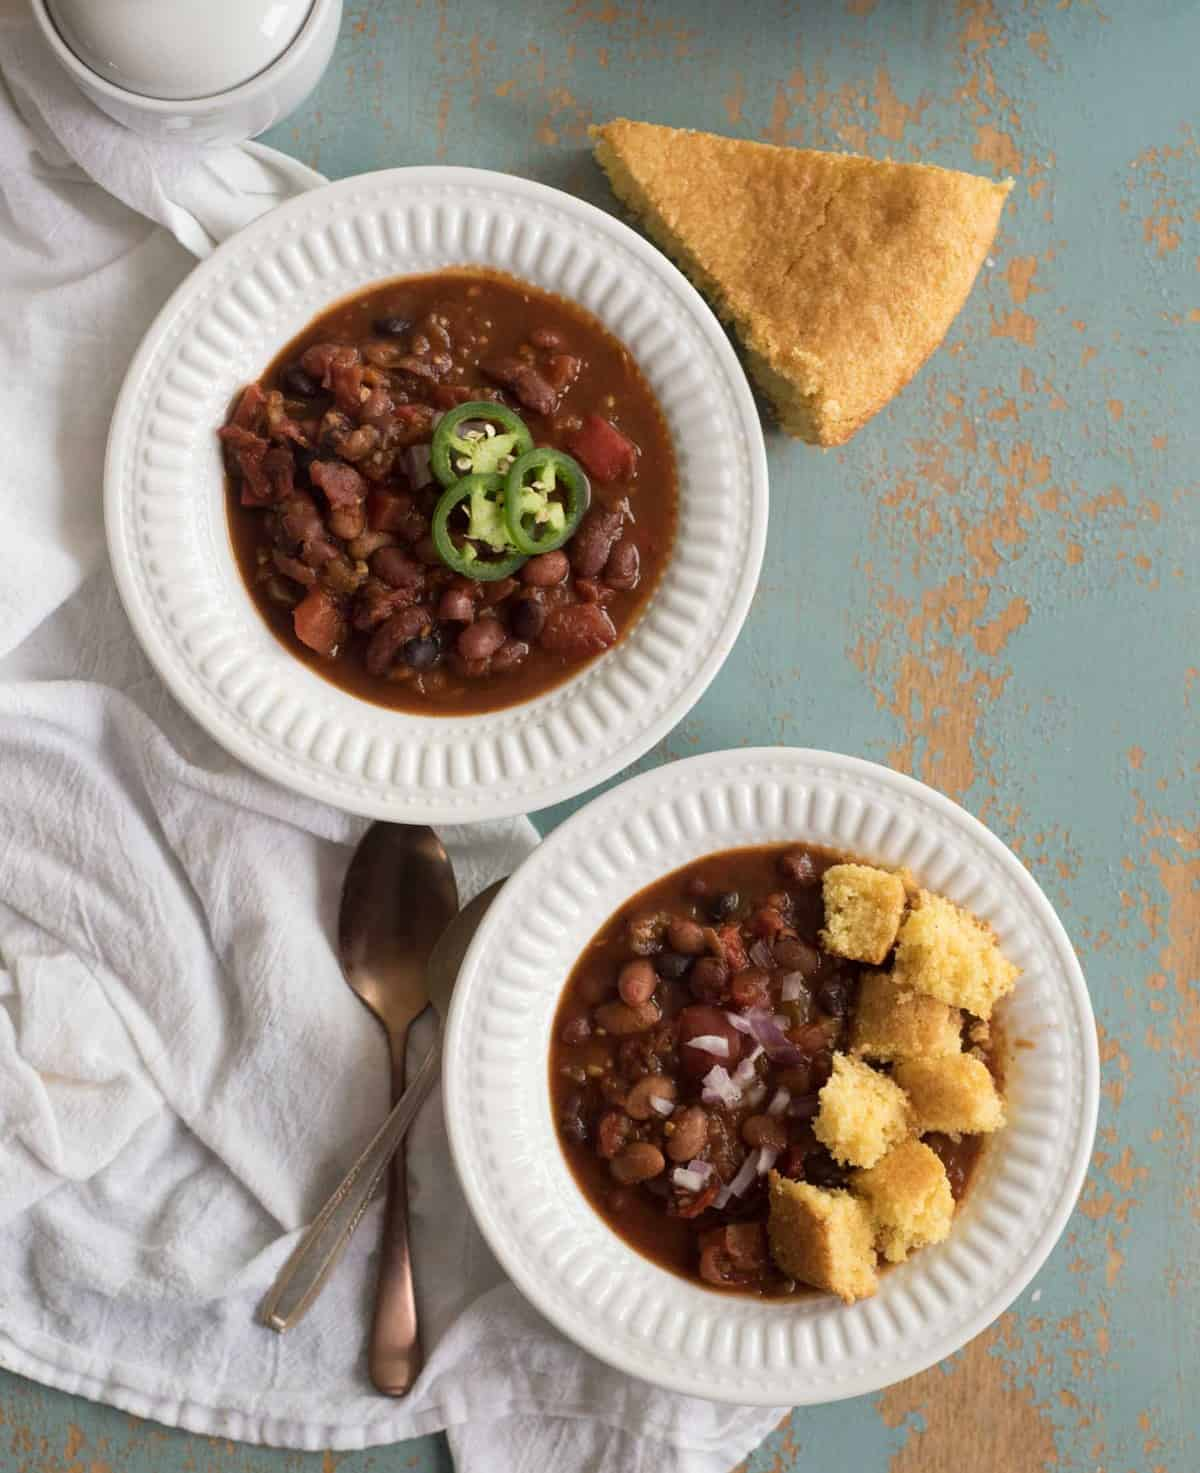 Healthy and flavorful Instant Pot Vegetarian Chili recipe made with a mix of dried beans, vegetables, spices, and a secret ingredient. A healthy one pot meatless meal your whole family will love.